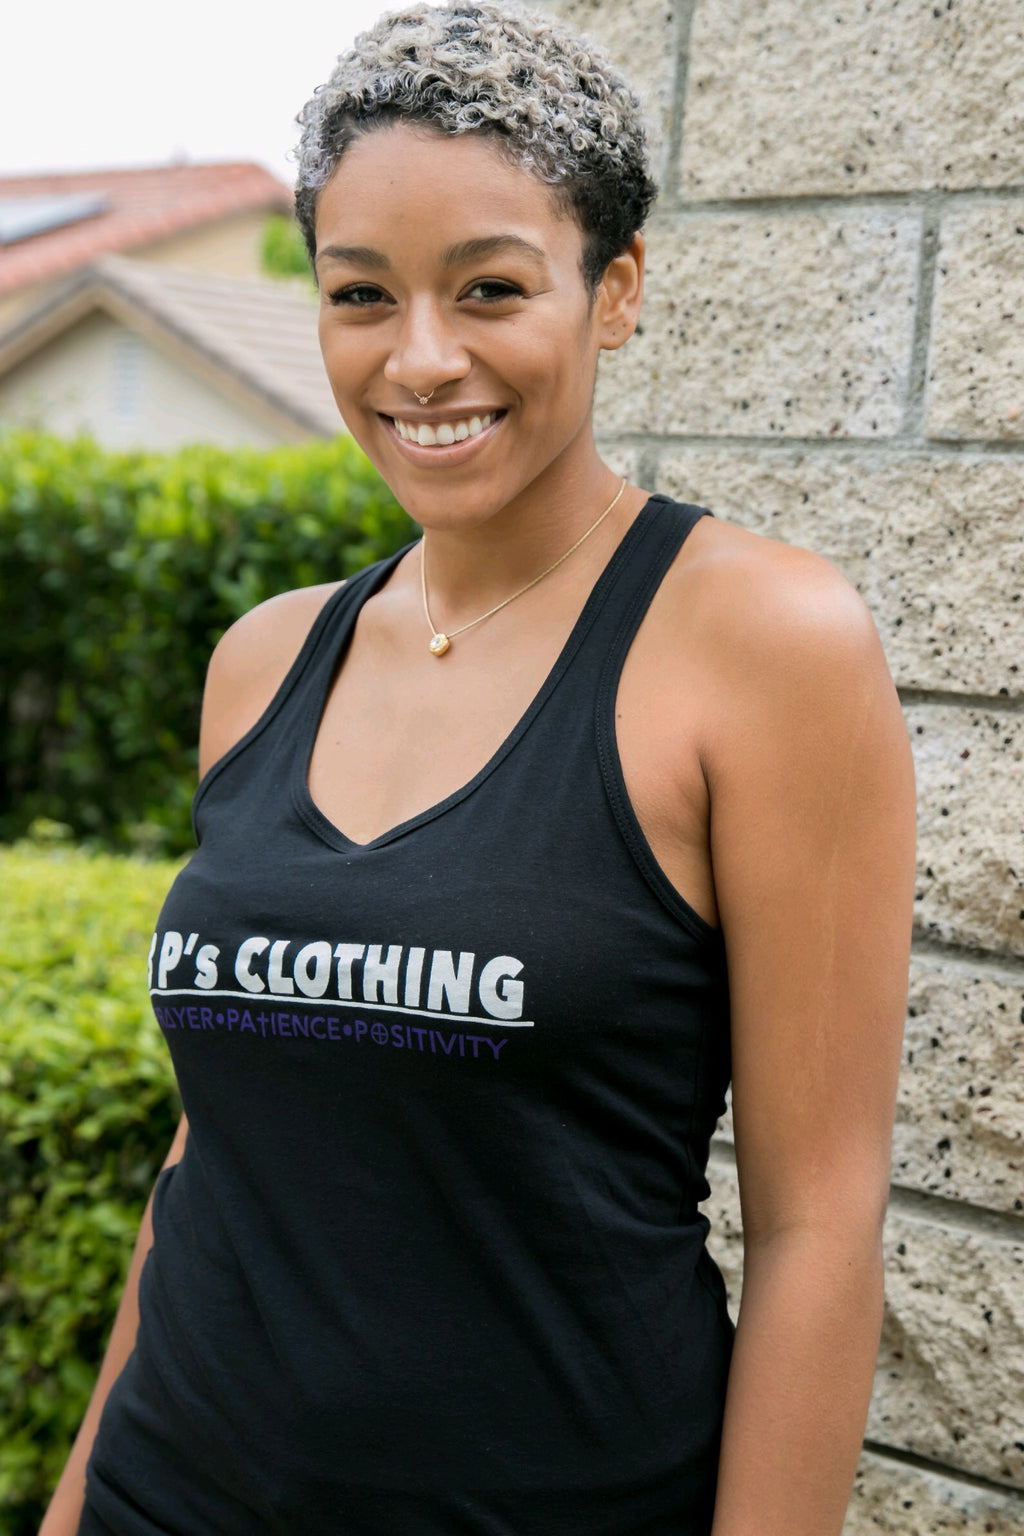 """3 s CLOTHING"" Ladies Tank Top - 3 P's Clothing"